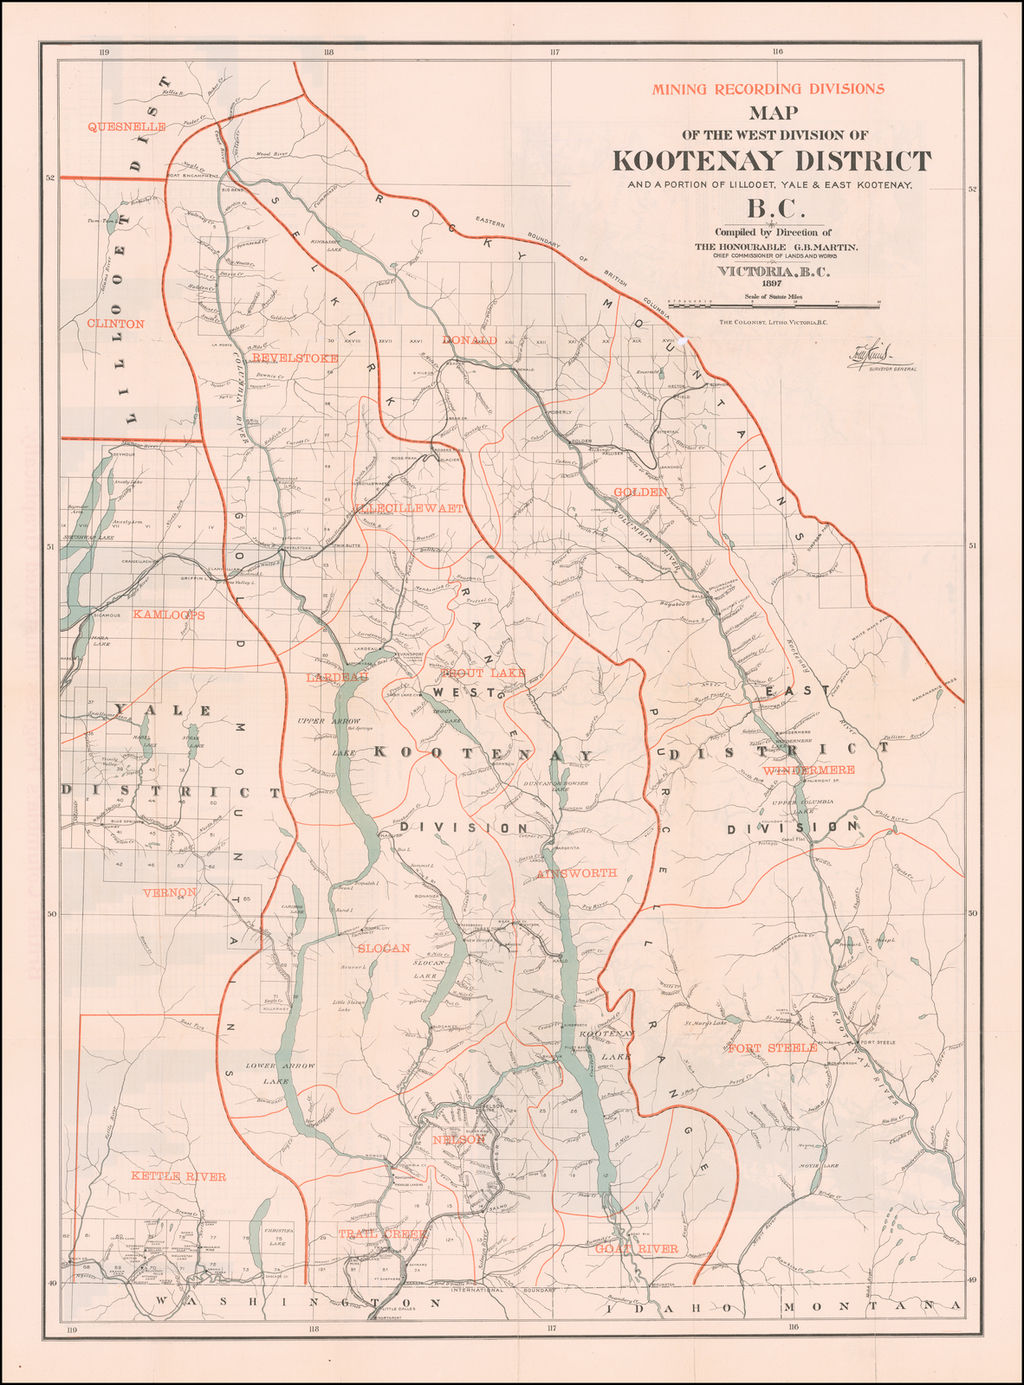 Map of the West Division of Kootenay District and a portion of Lillooet, Yale & East Kootenay, B. C.  Compiled by Direction of The Honourable G.B. Martin Chief Commissioner of Lands and Works  . . . 1897 (with) Map of the Klondyke, Cassiar, Omineca and Cariboo Gold Fields Shewing Routes (and)  Sketch Map of the Southern Portion of British Columbia . . . 1897 By Department of Lands and Works